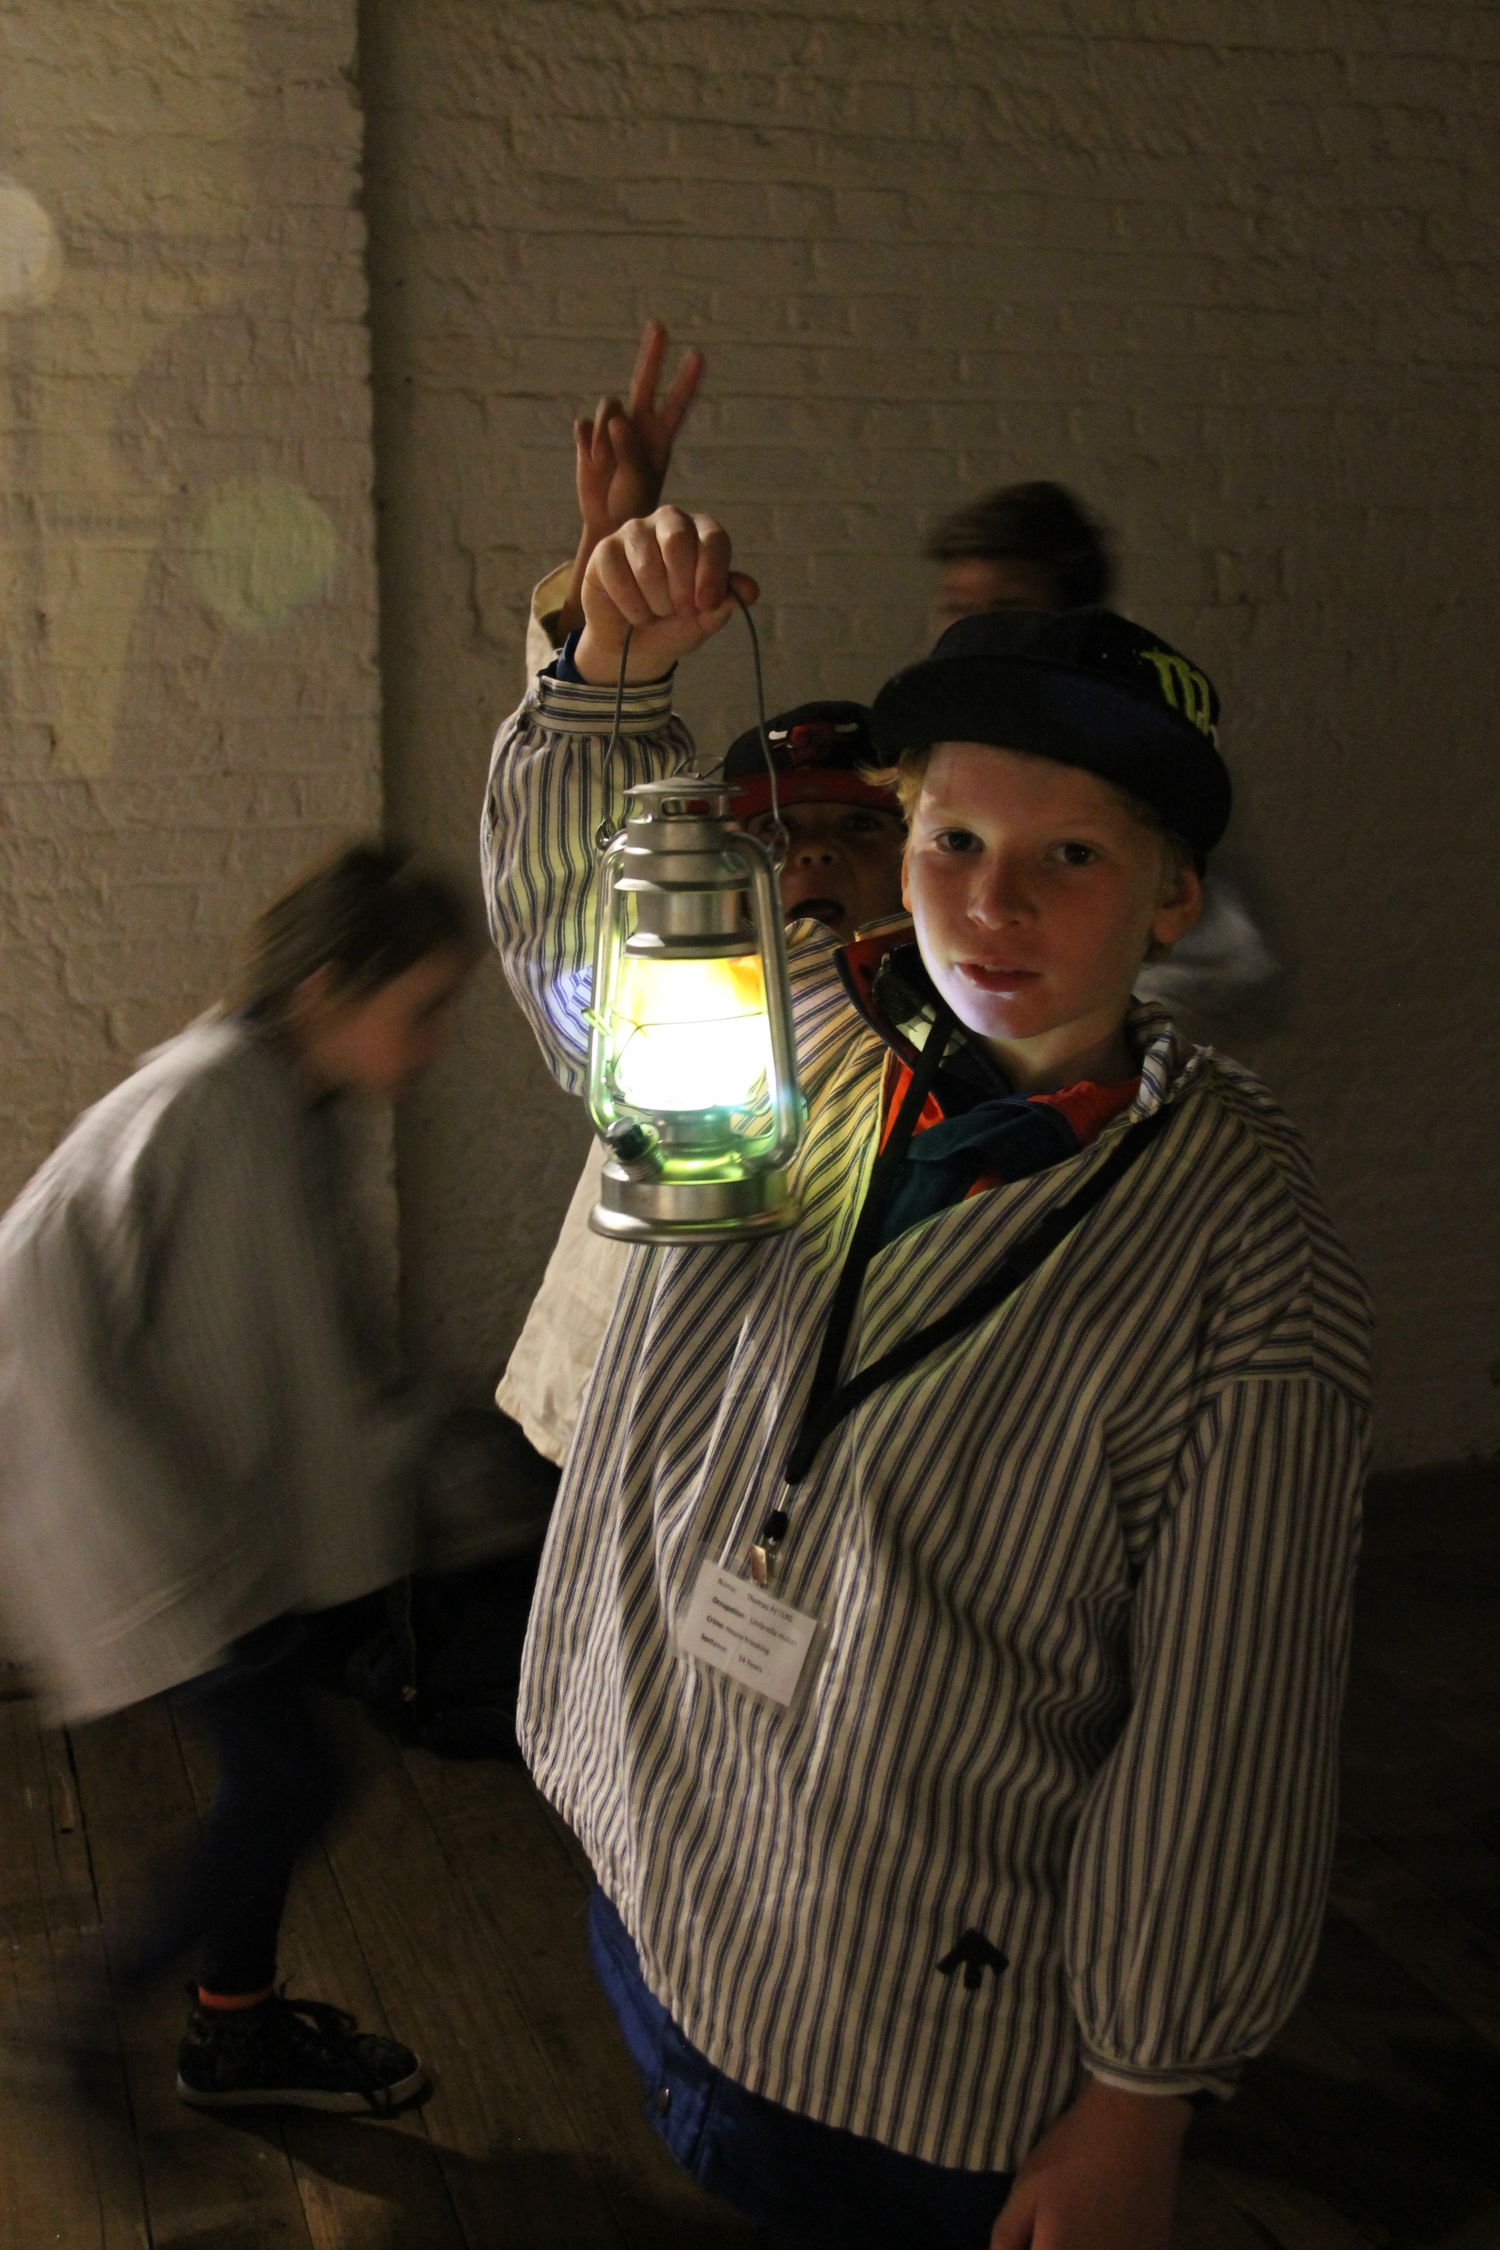 Boy dressed in convict clothes holding up lamp.